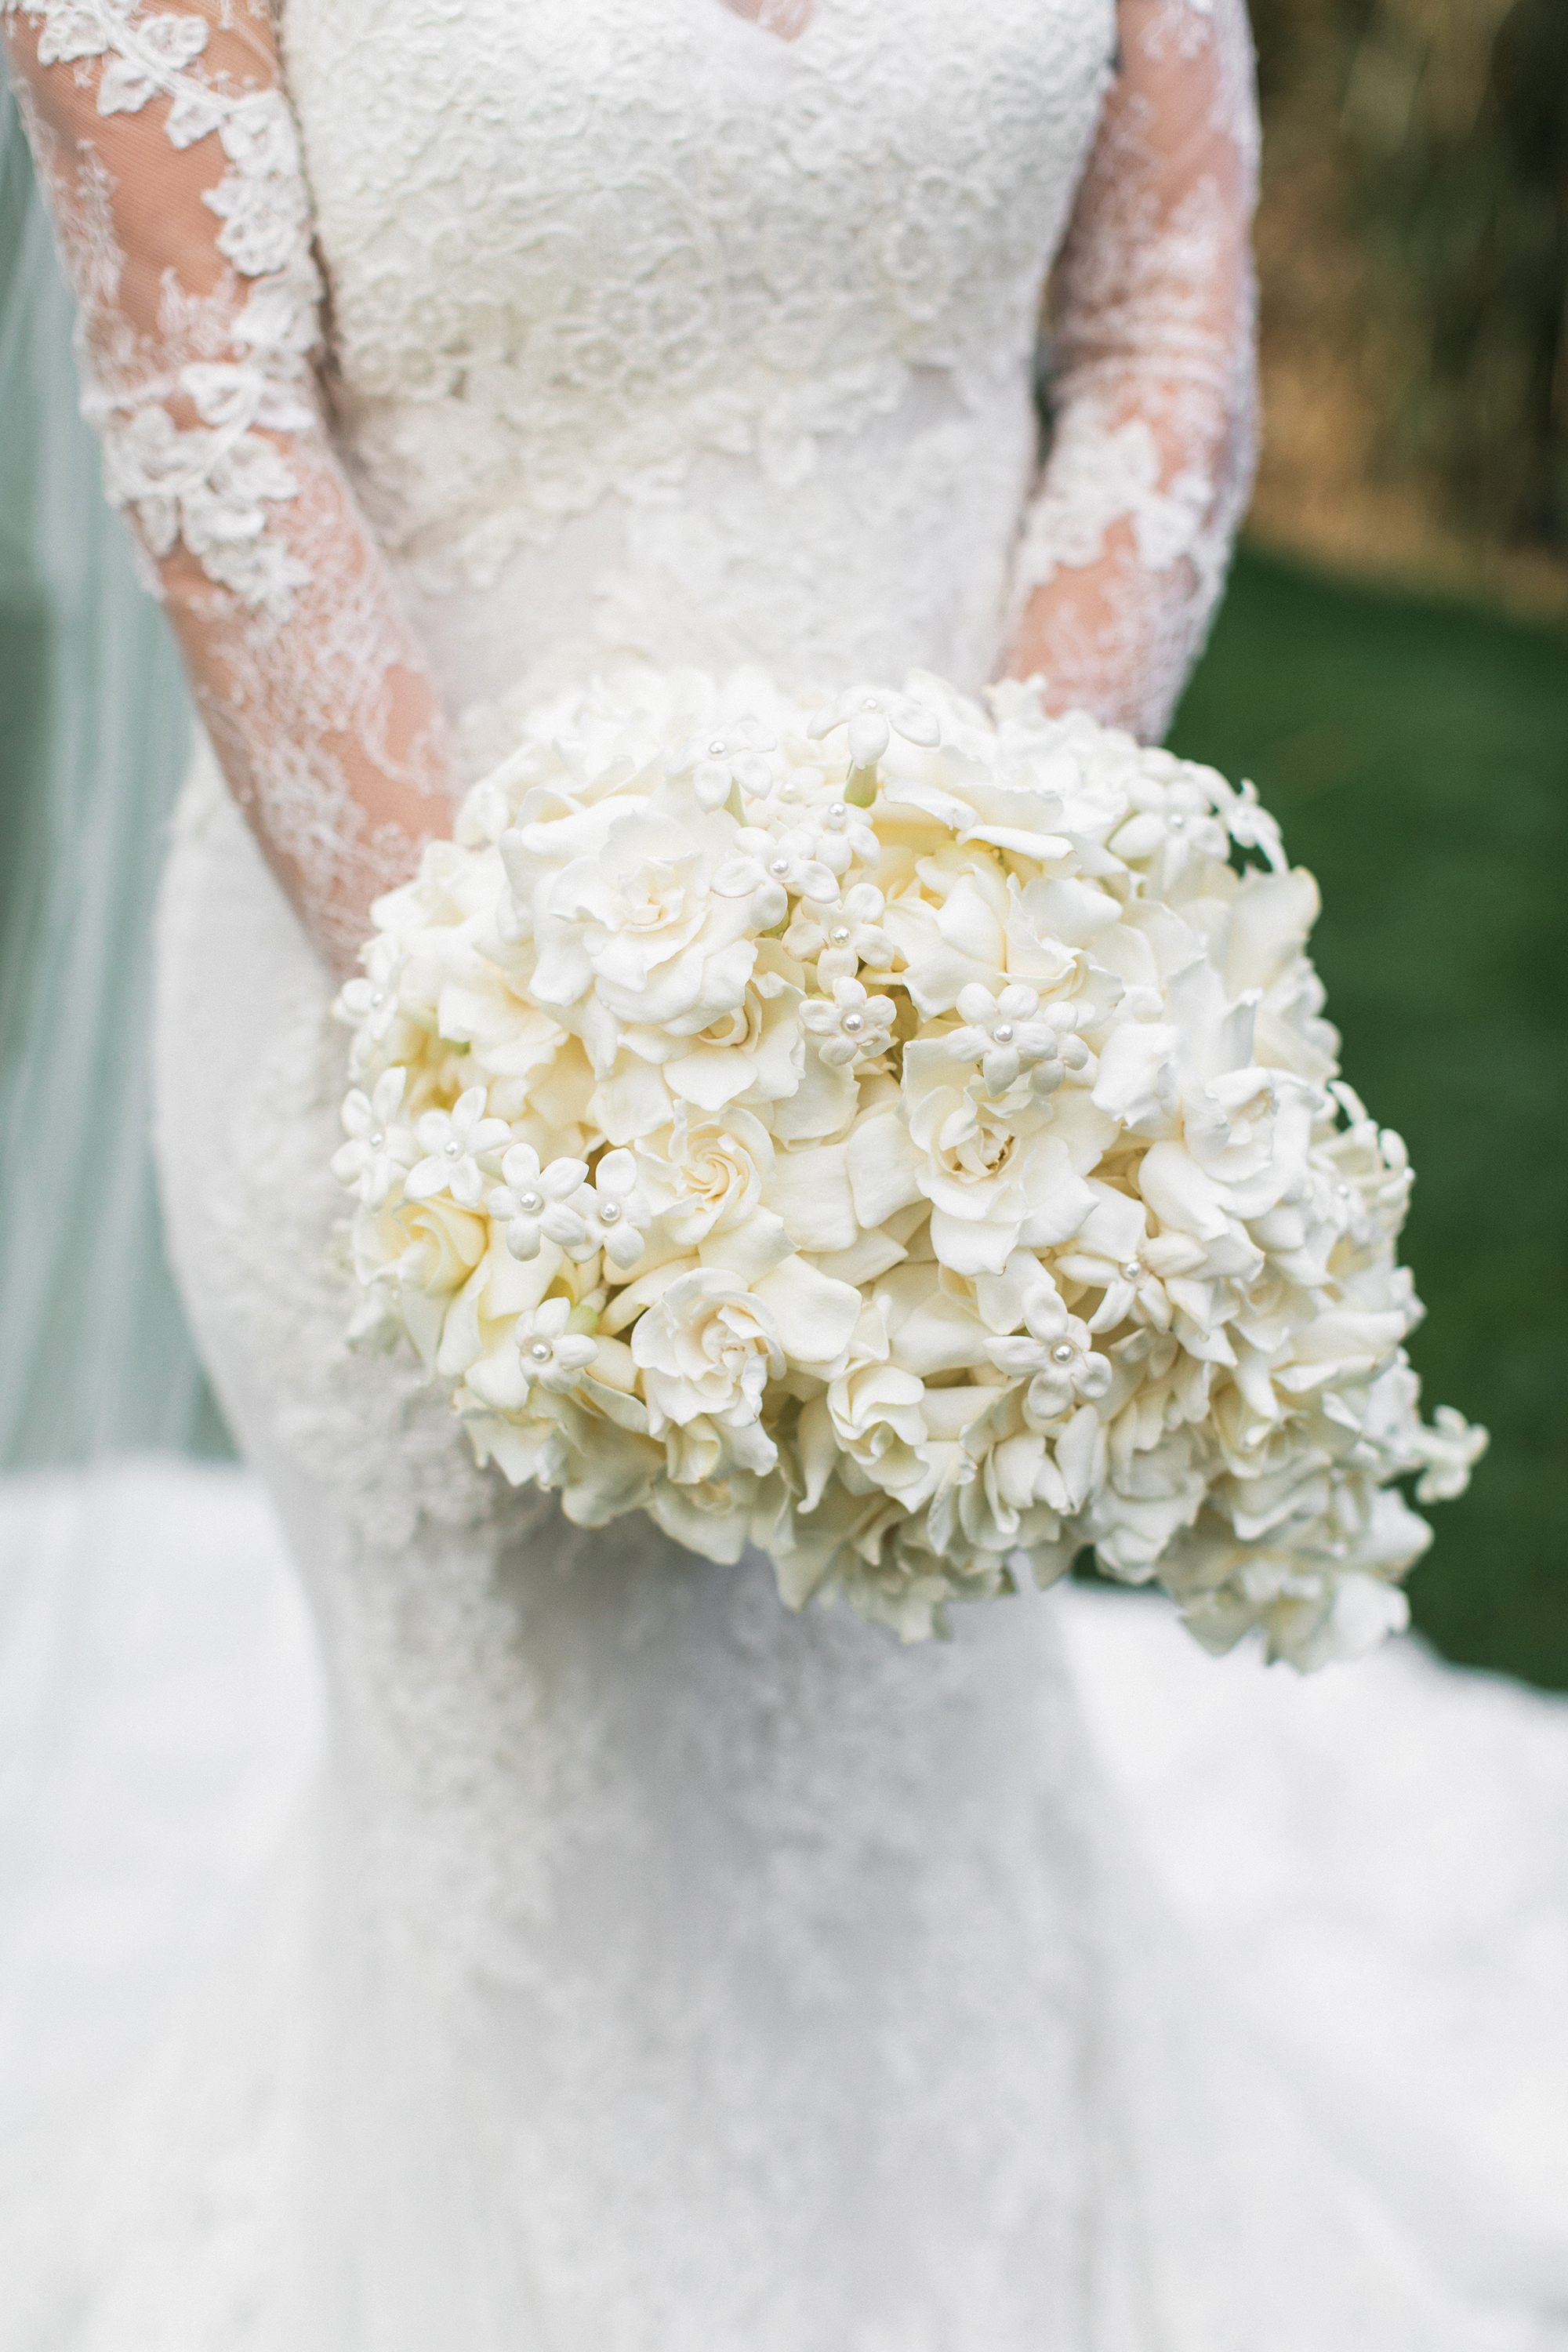 Best Bridal Bouquet Ideas Martha Stewart Weddings